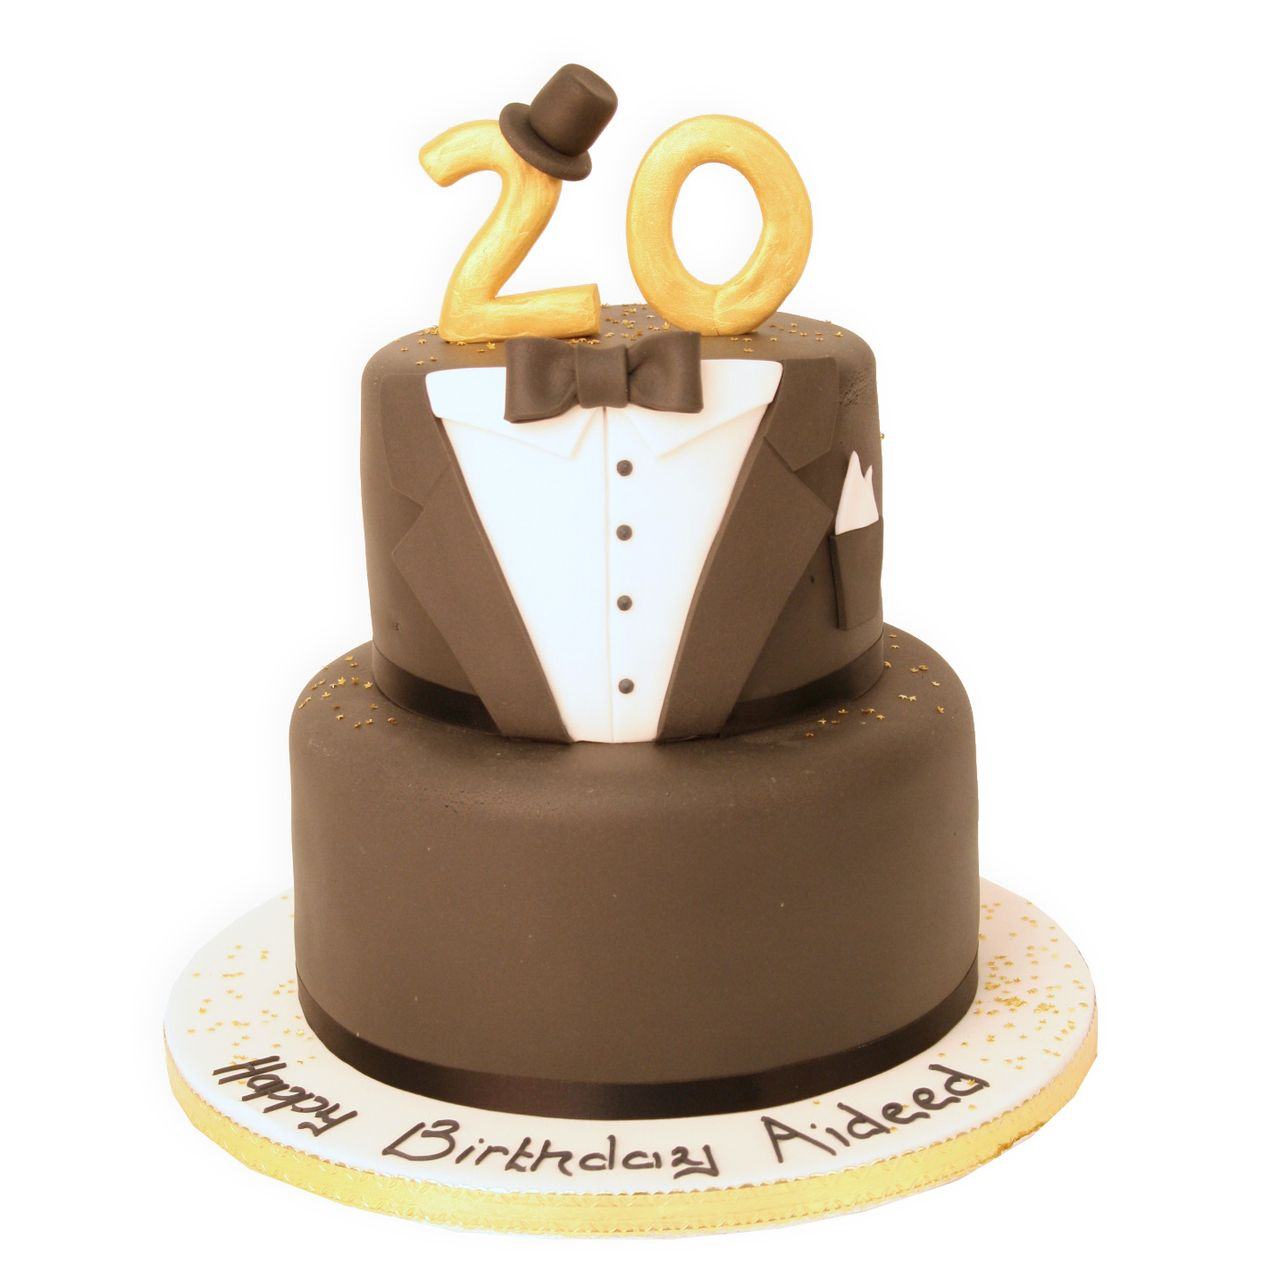 Black Tie Special Age Cake freshly made, delicious and